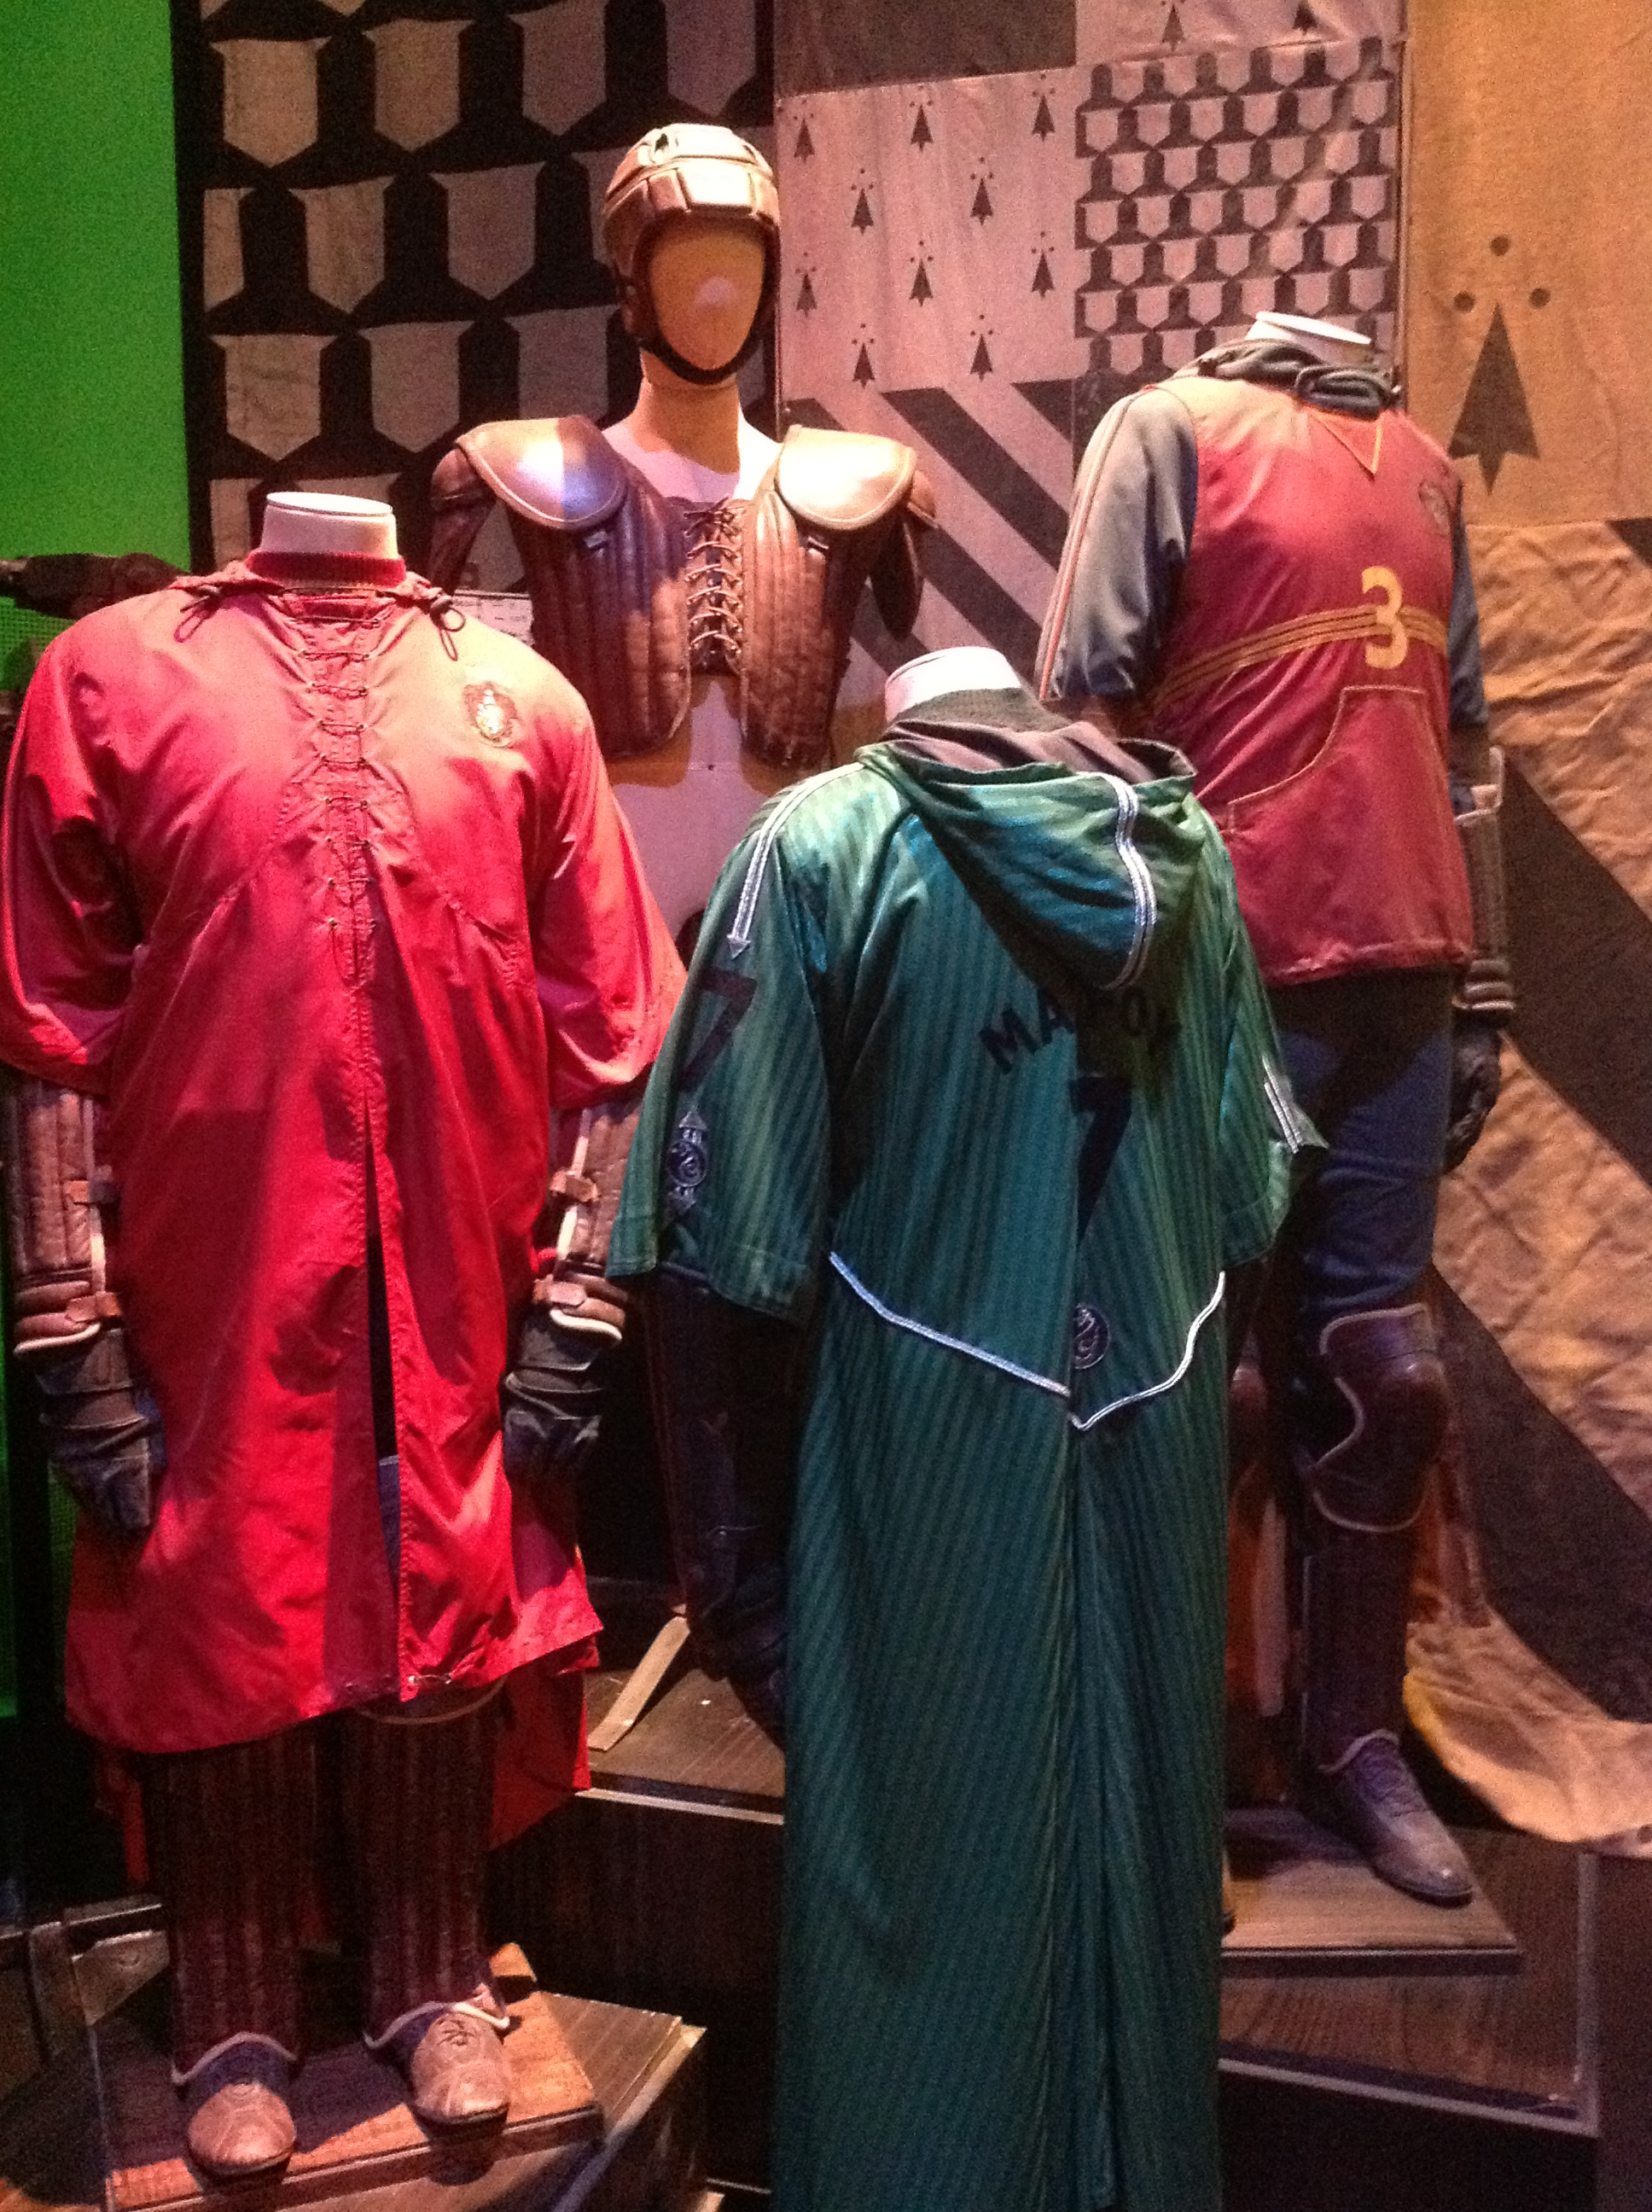 Harry Potter Studio Tour London Costumes Quidditch Robes The Adventure Is Afoot